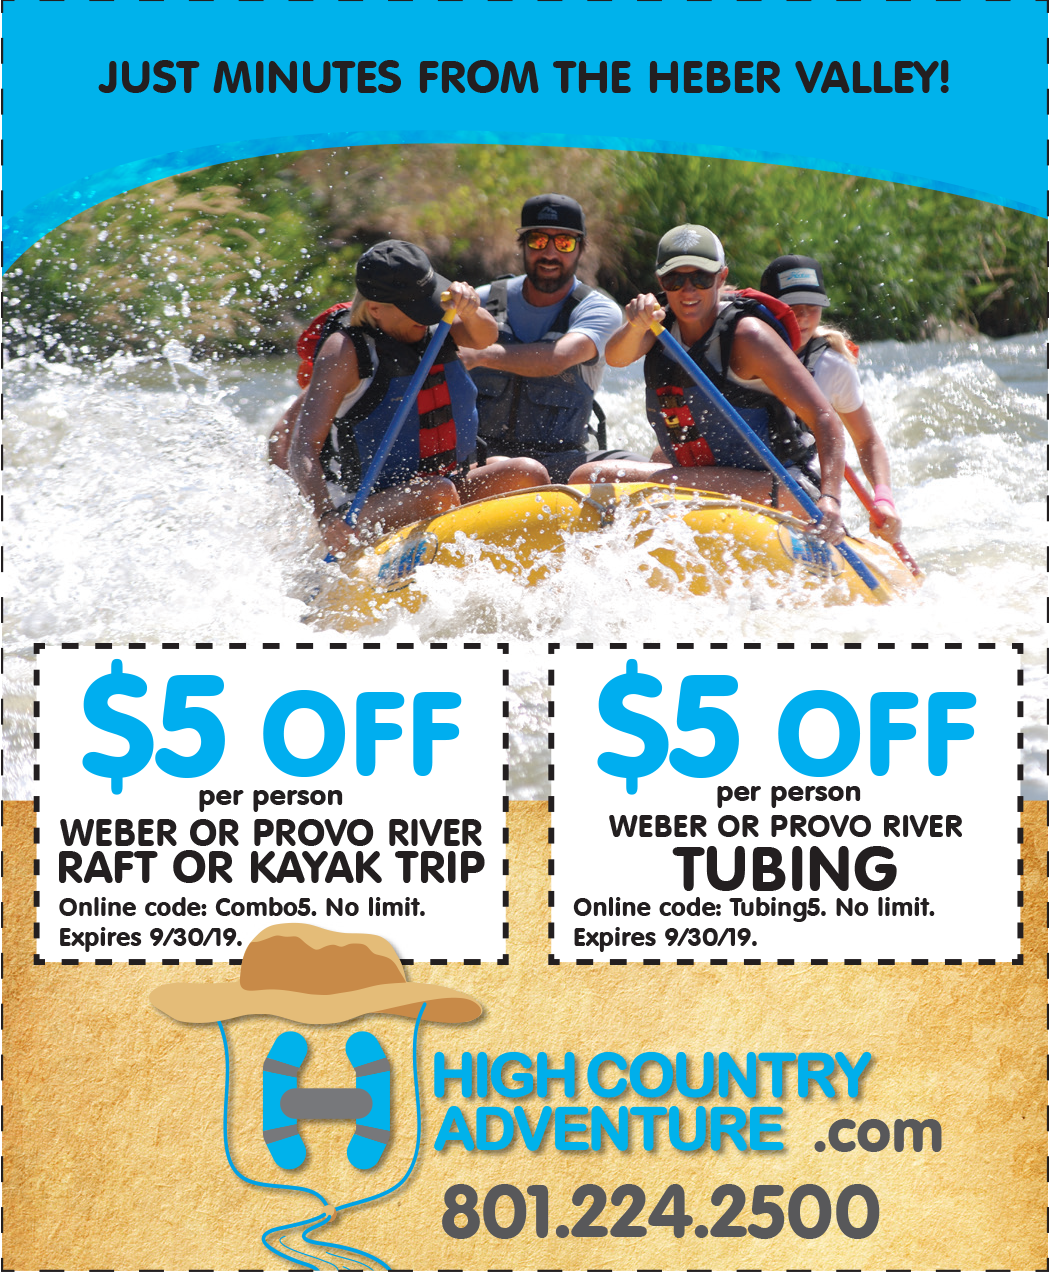 $5 OFF River Rafting or Tubing – High Country Adventure